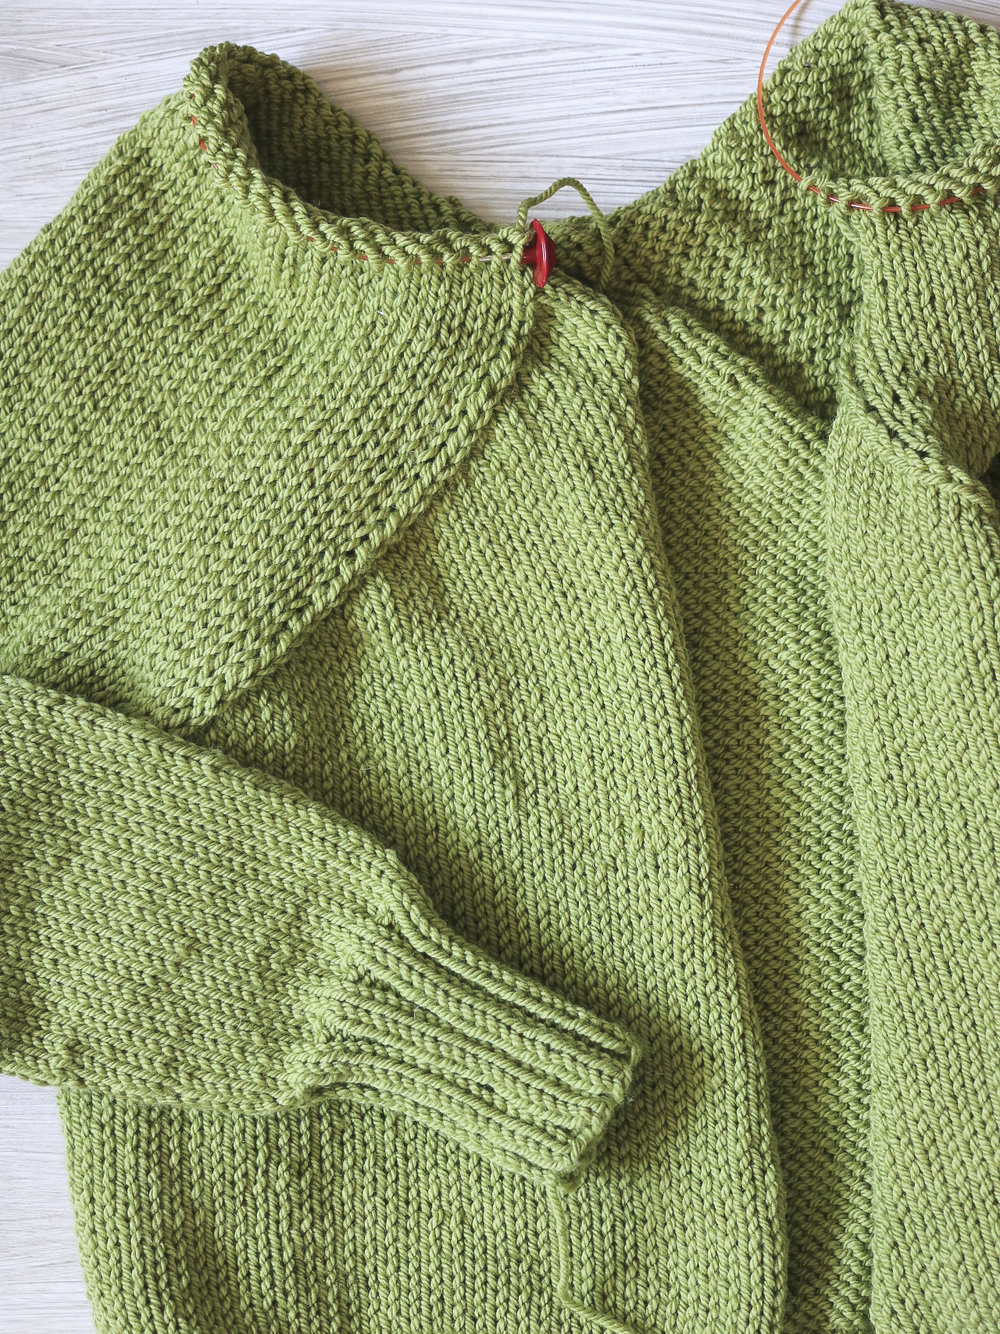 Carbeth Cardigan almost done!